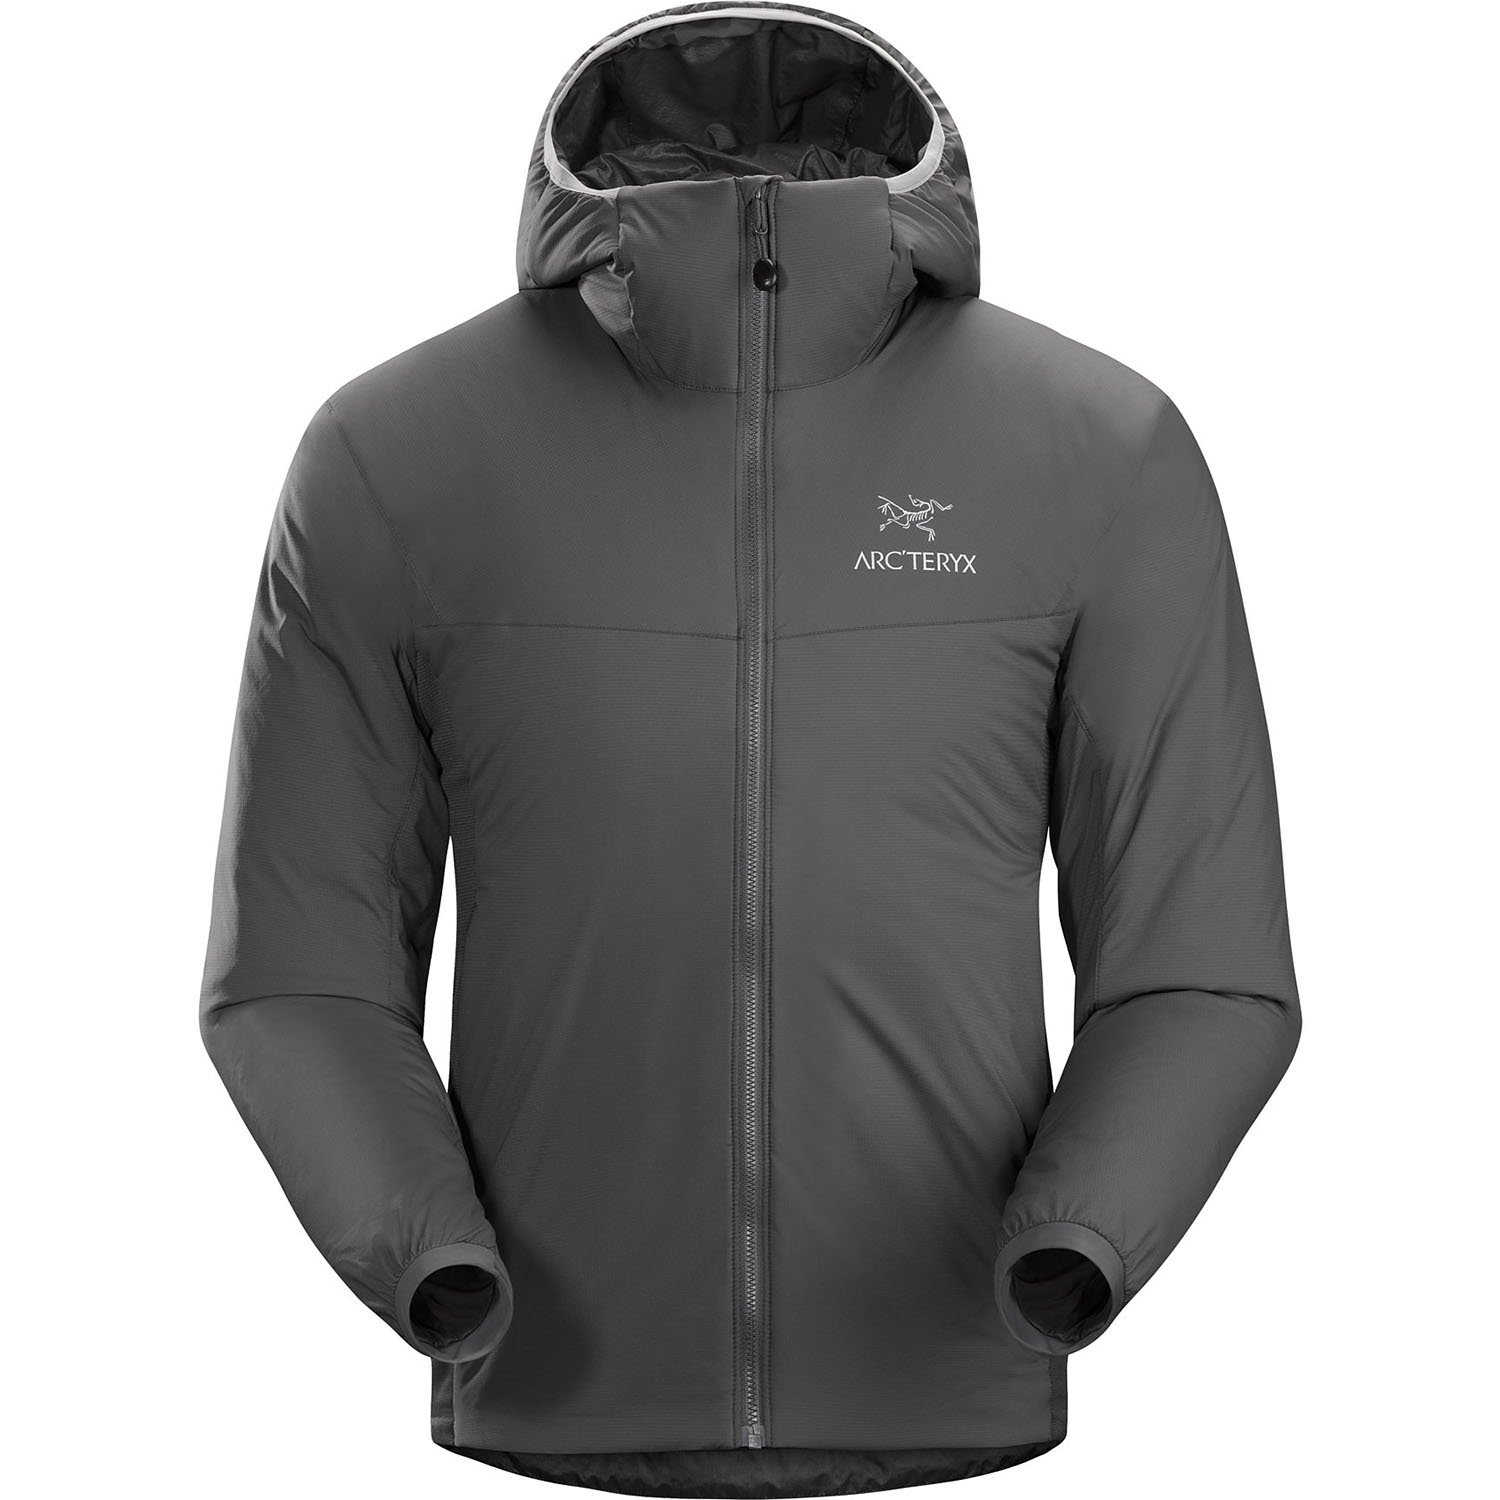 99b0be0f67bf Amazon.com  Arc teryx Atom LT Hoody Men s  Sports   Outdoors